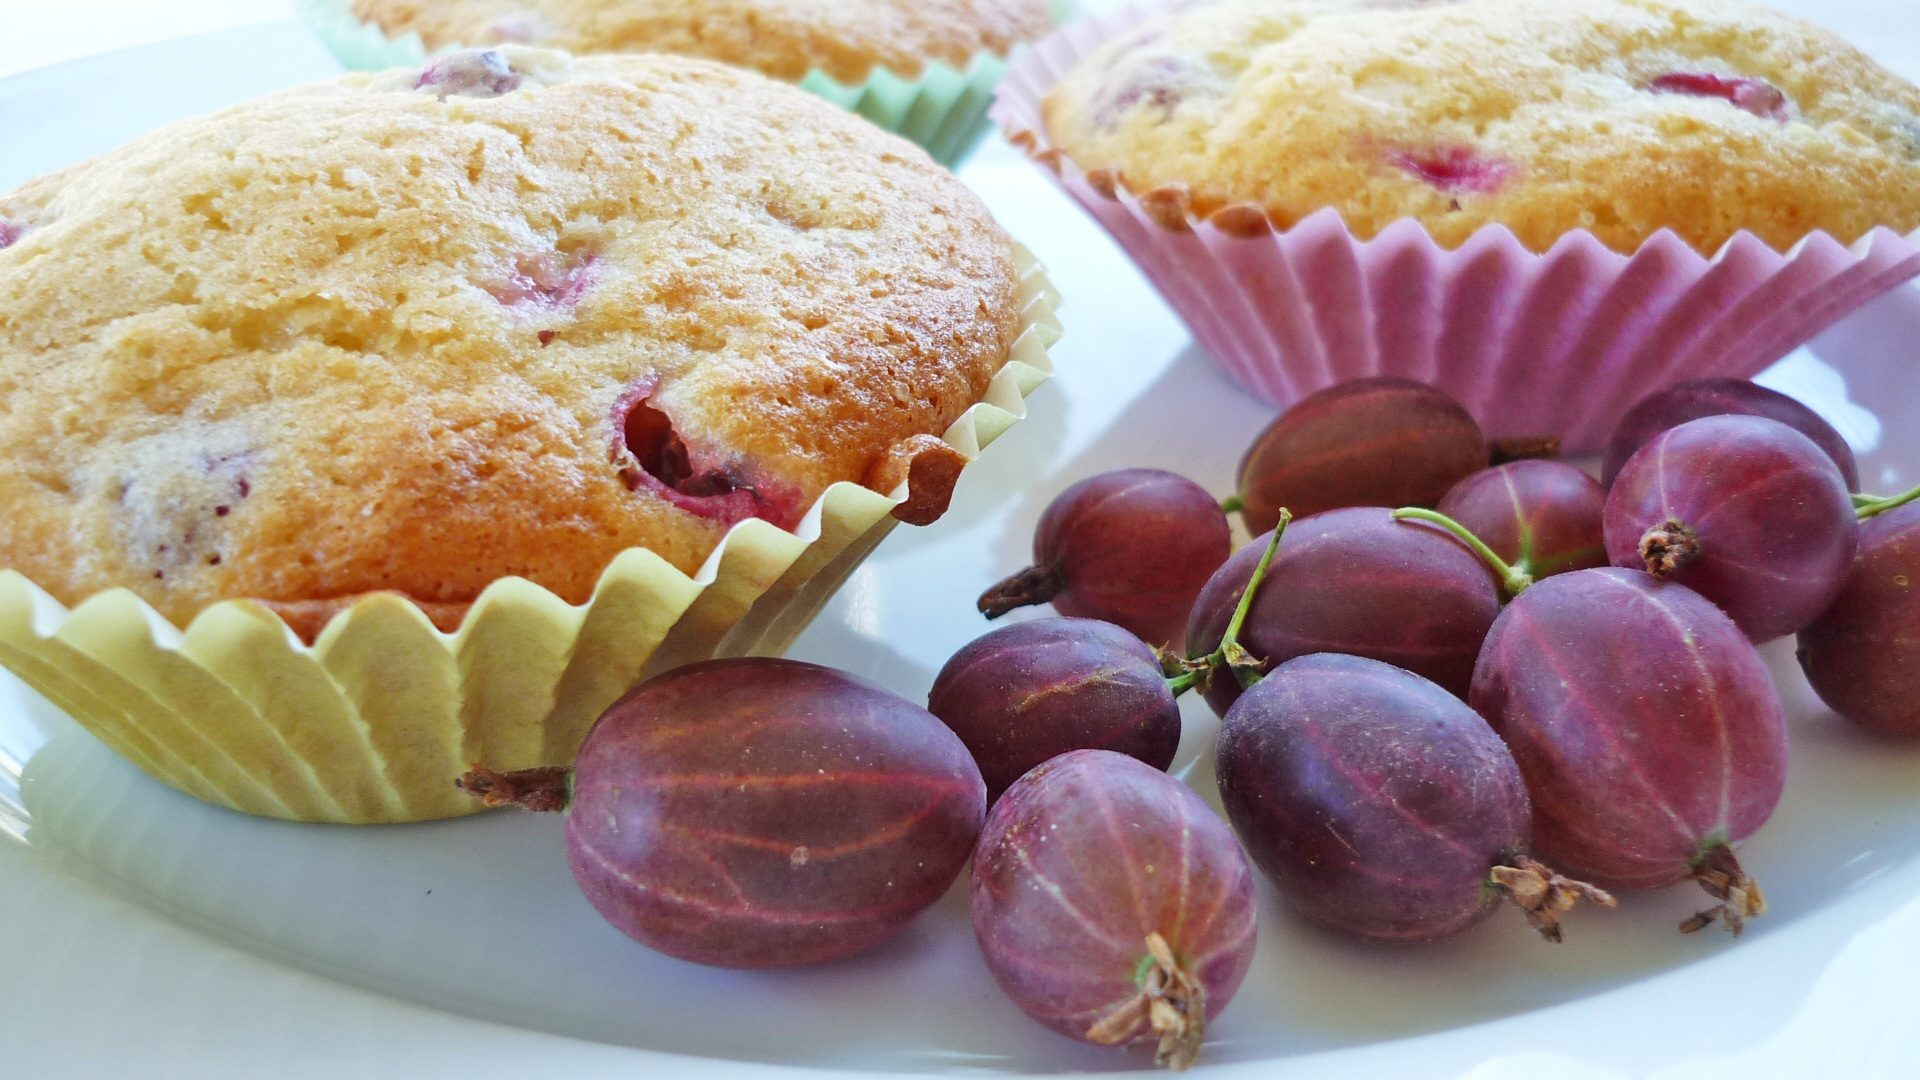 gooseberry-muffins-797821